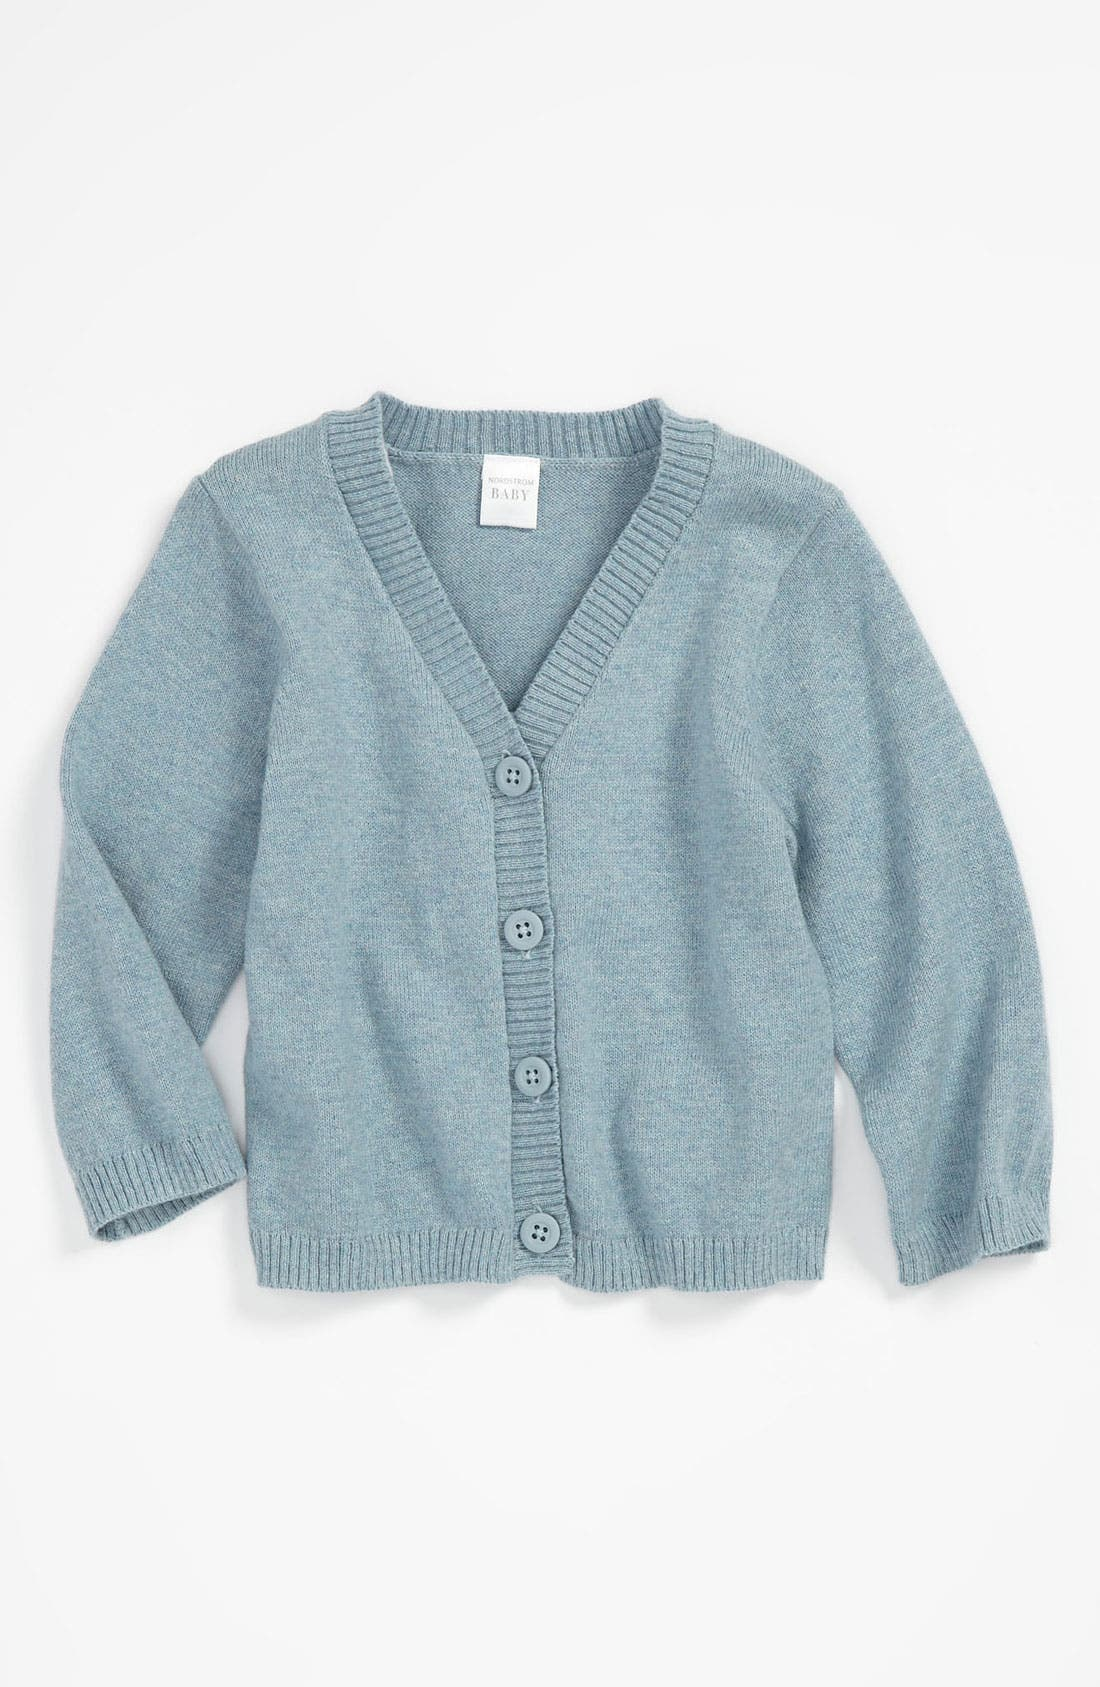 Main Image - Nordstrom Baby Cardigan (Baby)